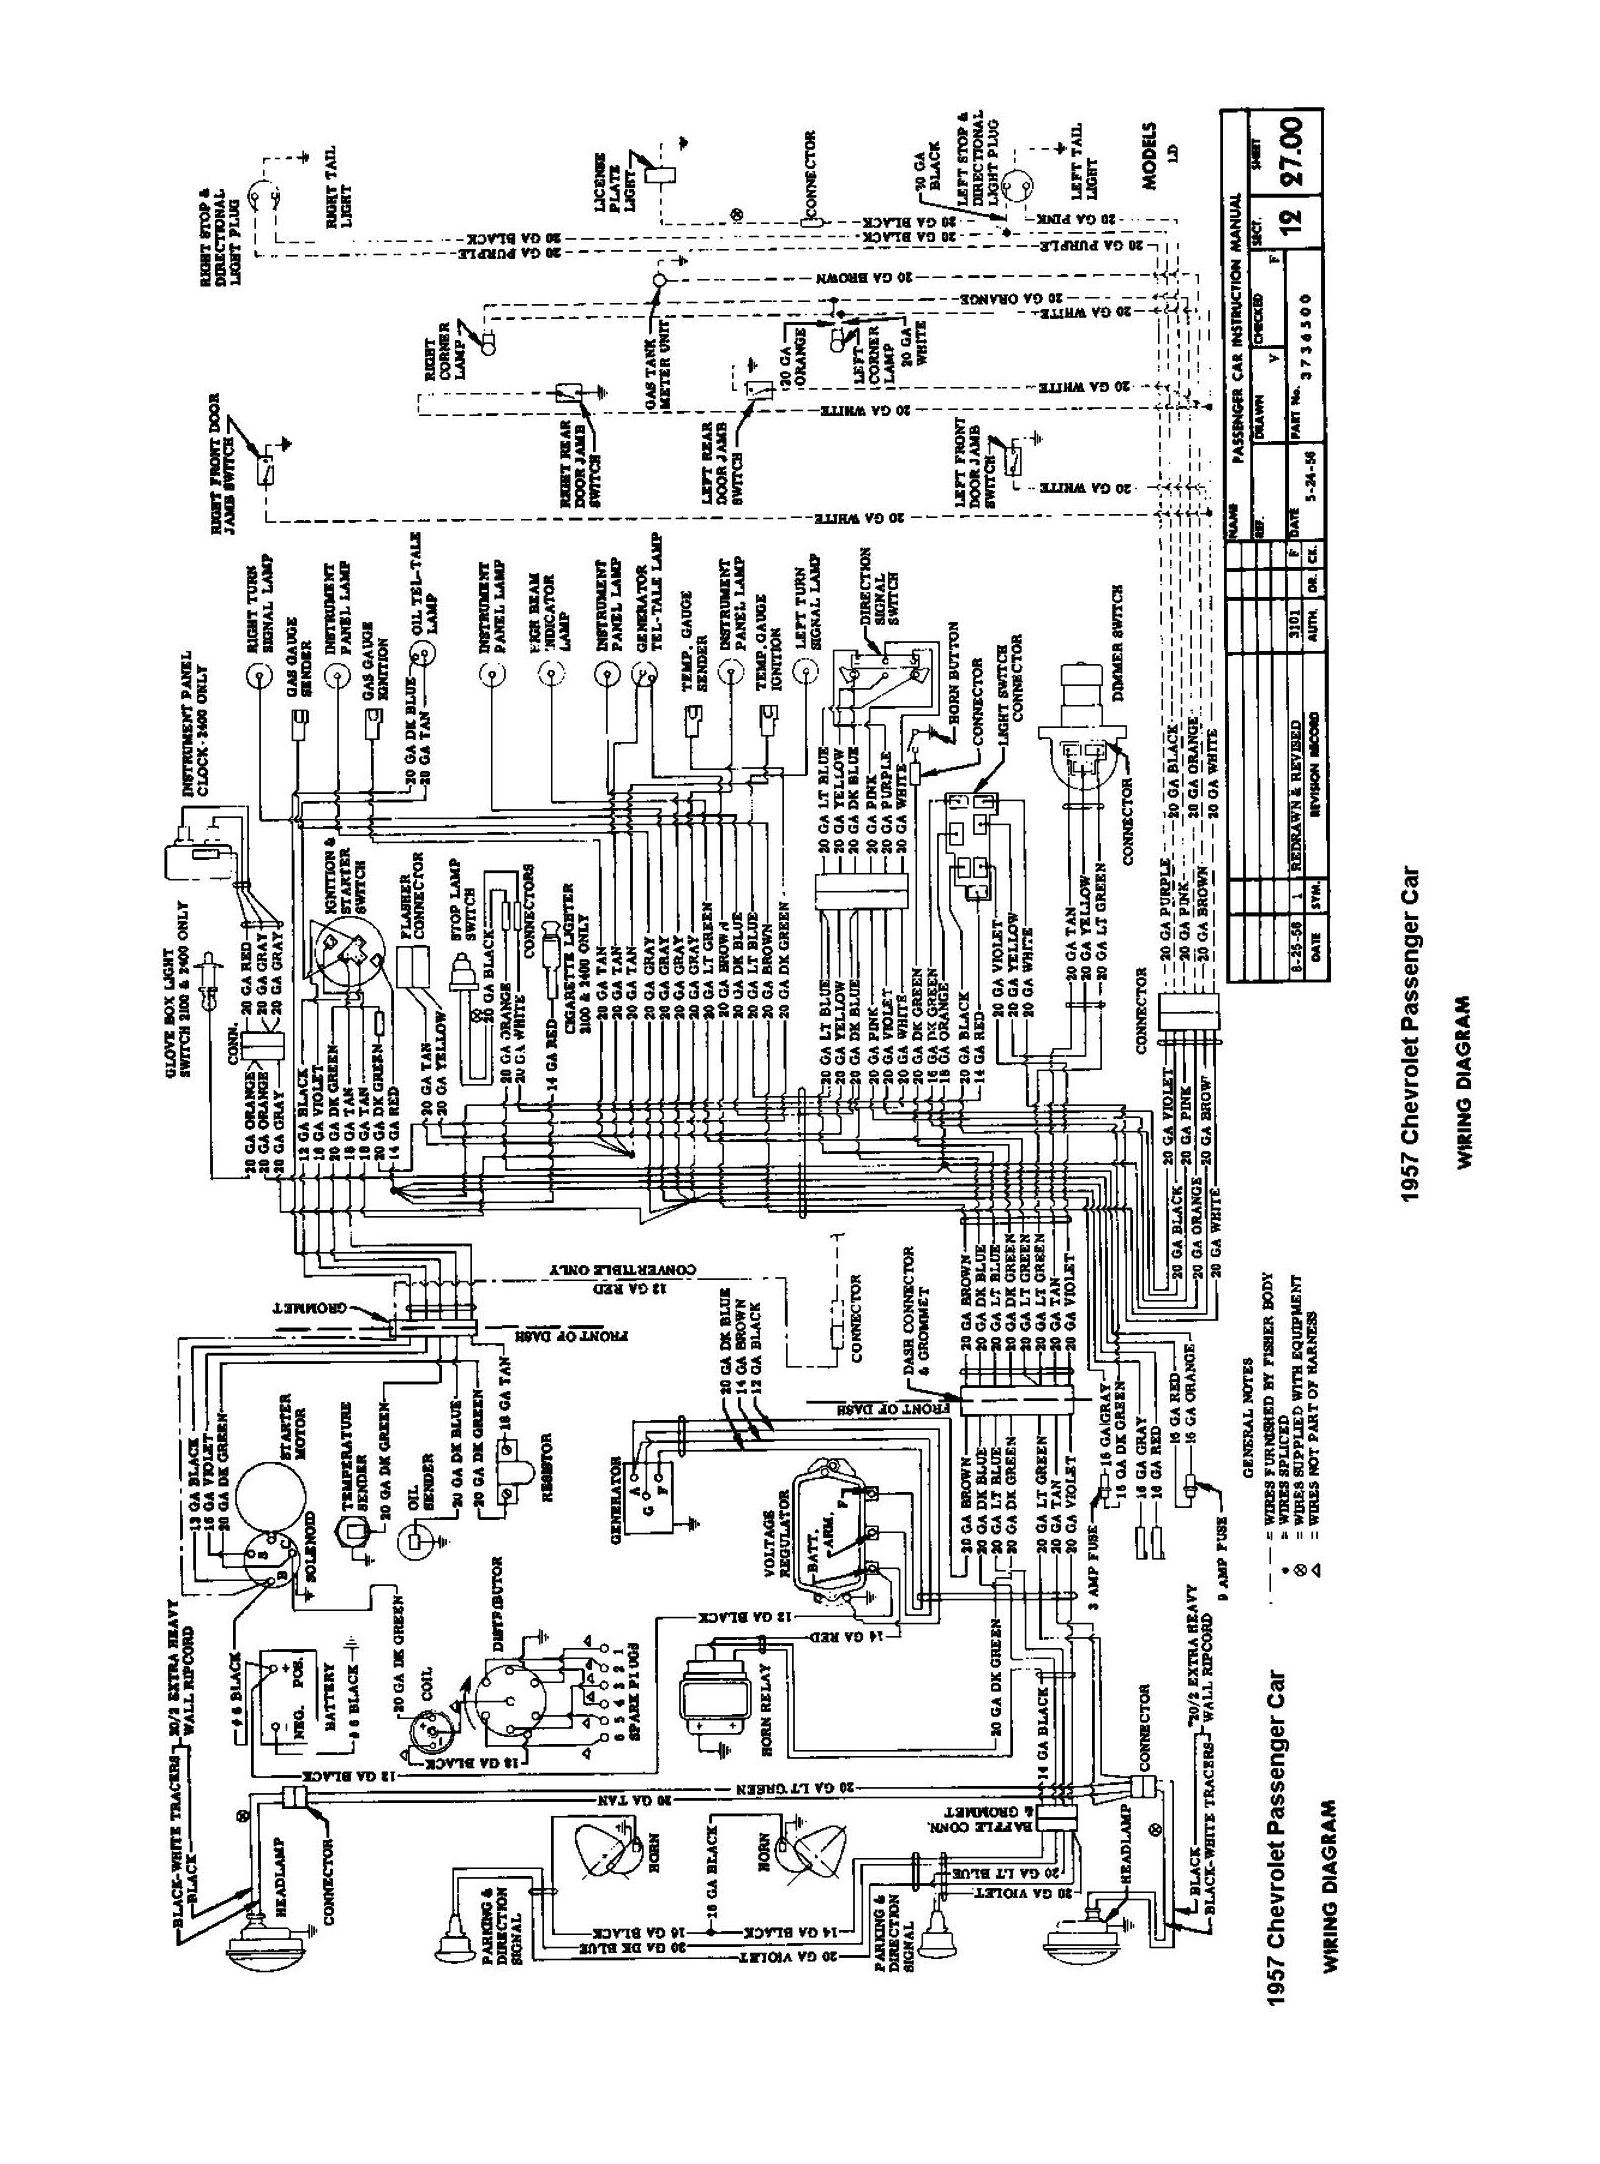 57car chevy wiring diagrams chevy radio wiring \u2022 wiring diagrams j GM Factory Wiring Diagram at honlapkeszites.co